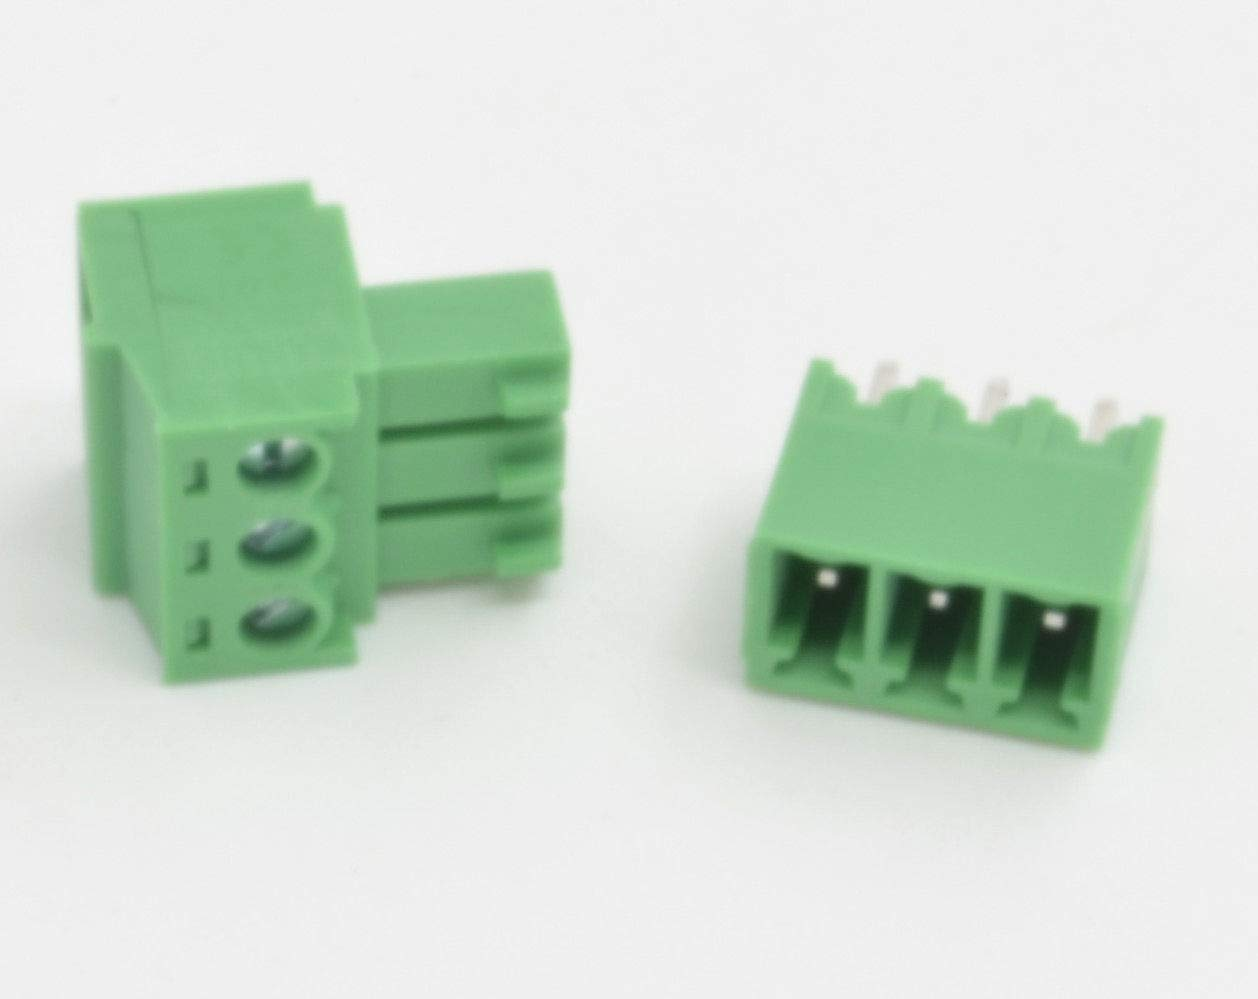 100 Pcs 3.81mm Pitch 3 Pin Straight Screw Pluggable Terminal Block Plug Connector